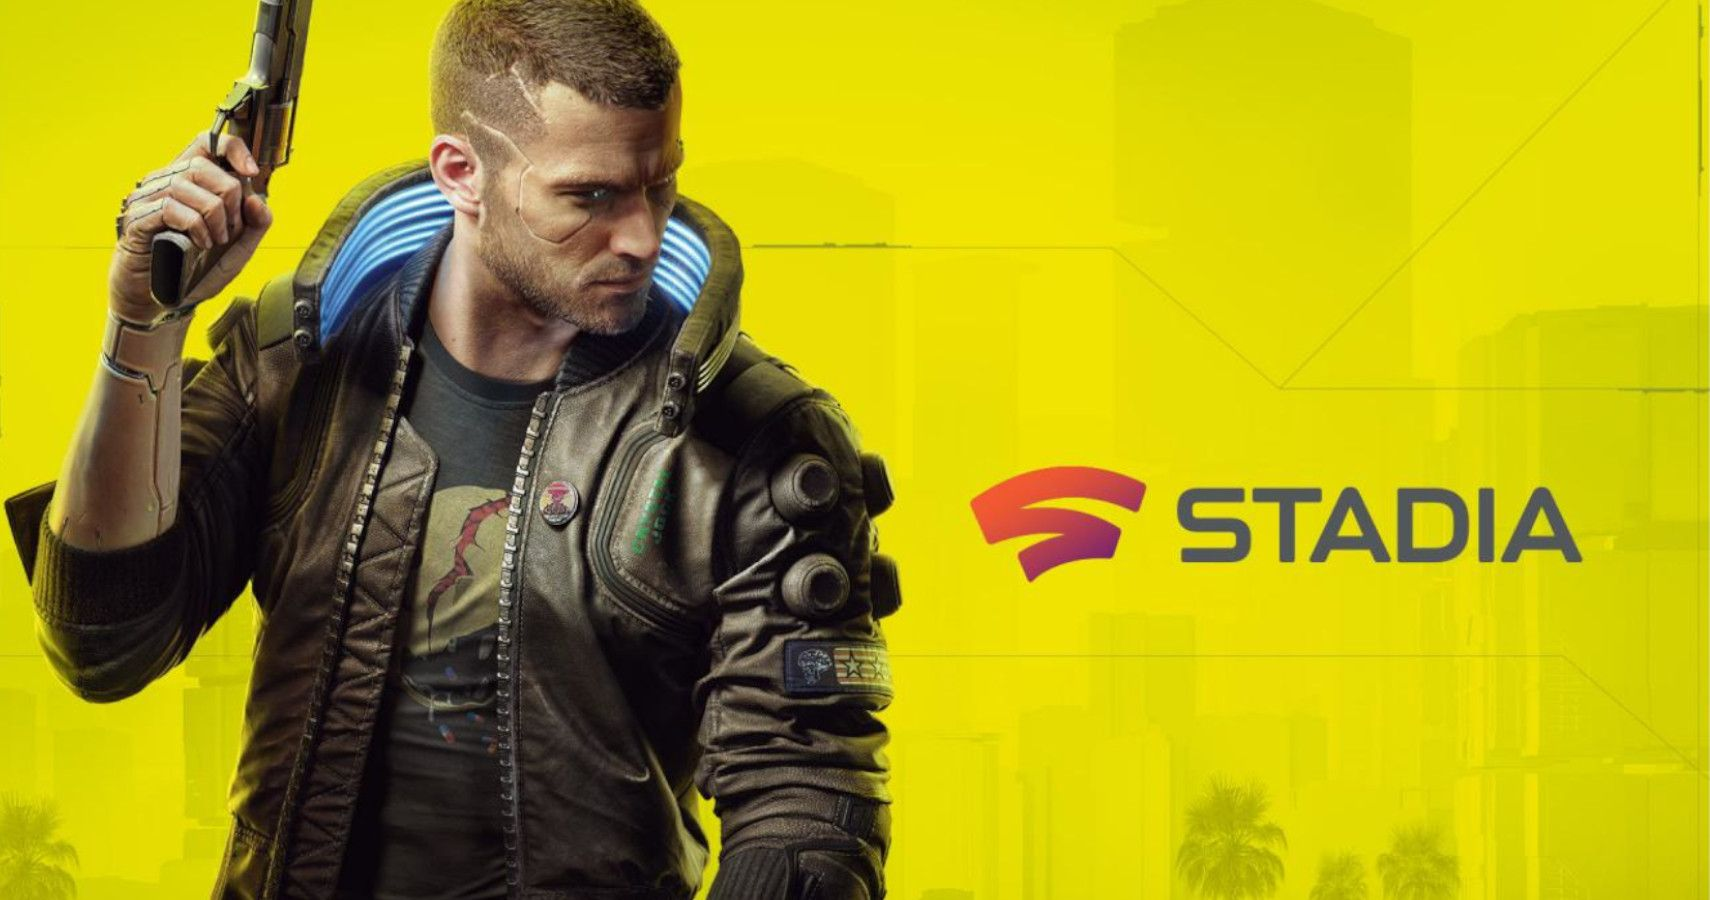 Cyberpunk 2077 Is Going To Save Stadia